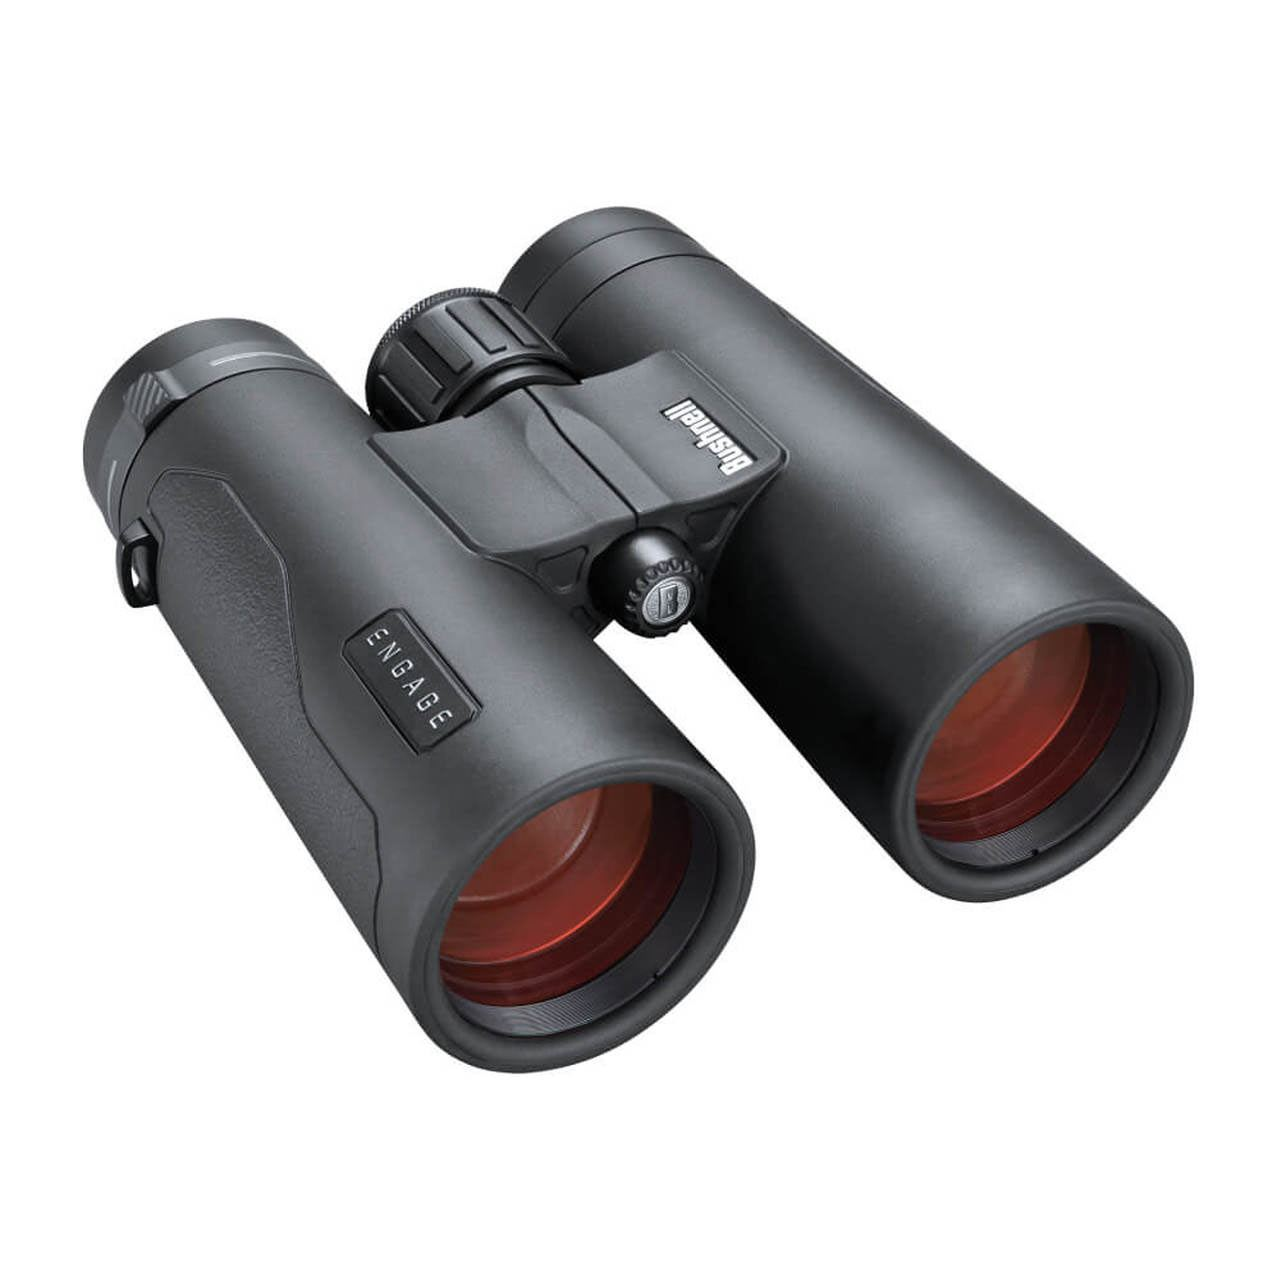 Image of Bushnell Engage 10x42 Binoculars